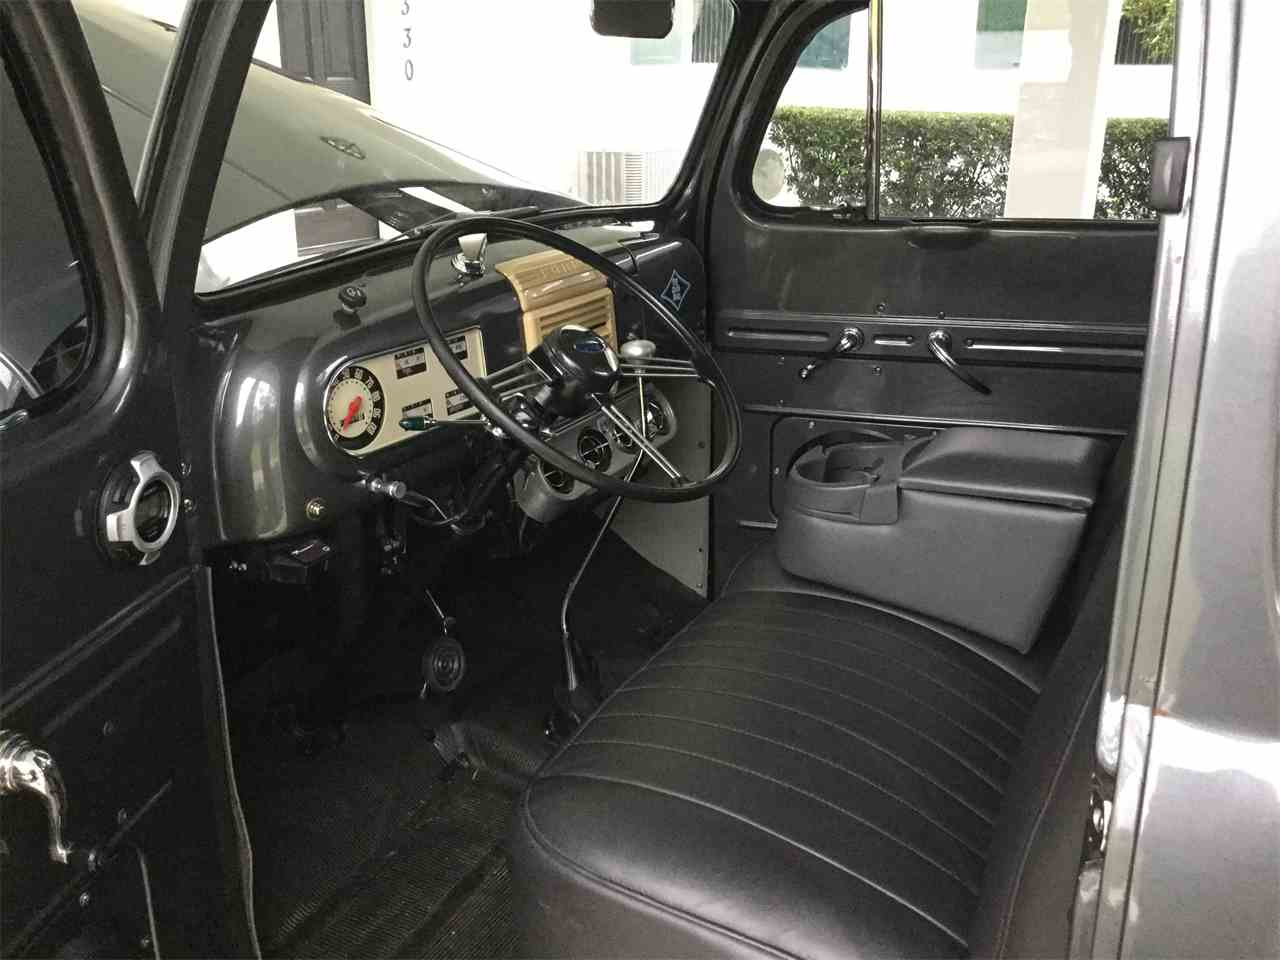 Large Picture of 1950 Ford F1 Pickup located in Florida - $39,000.00 Offered by a Private Seller - GIBQ